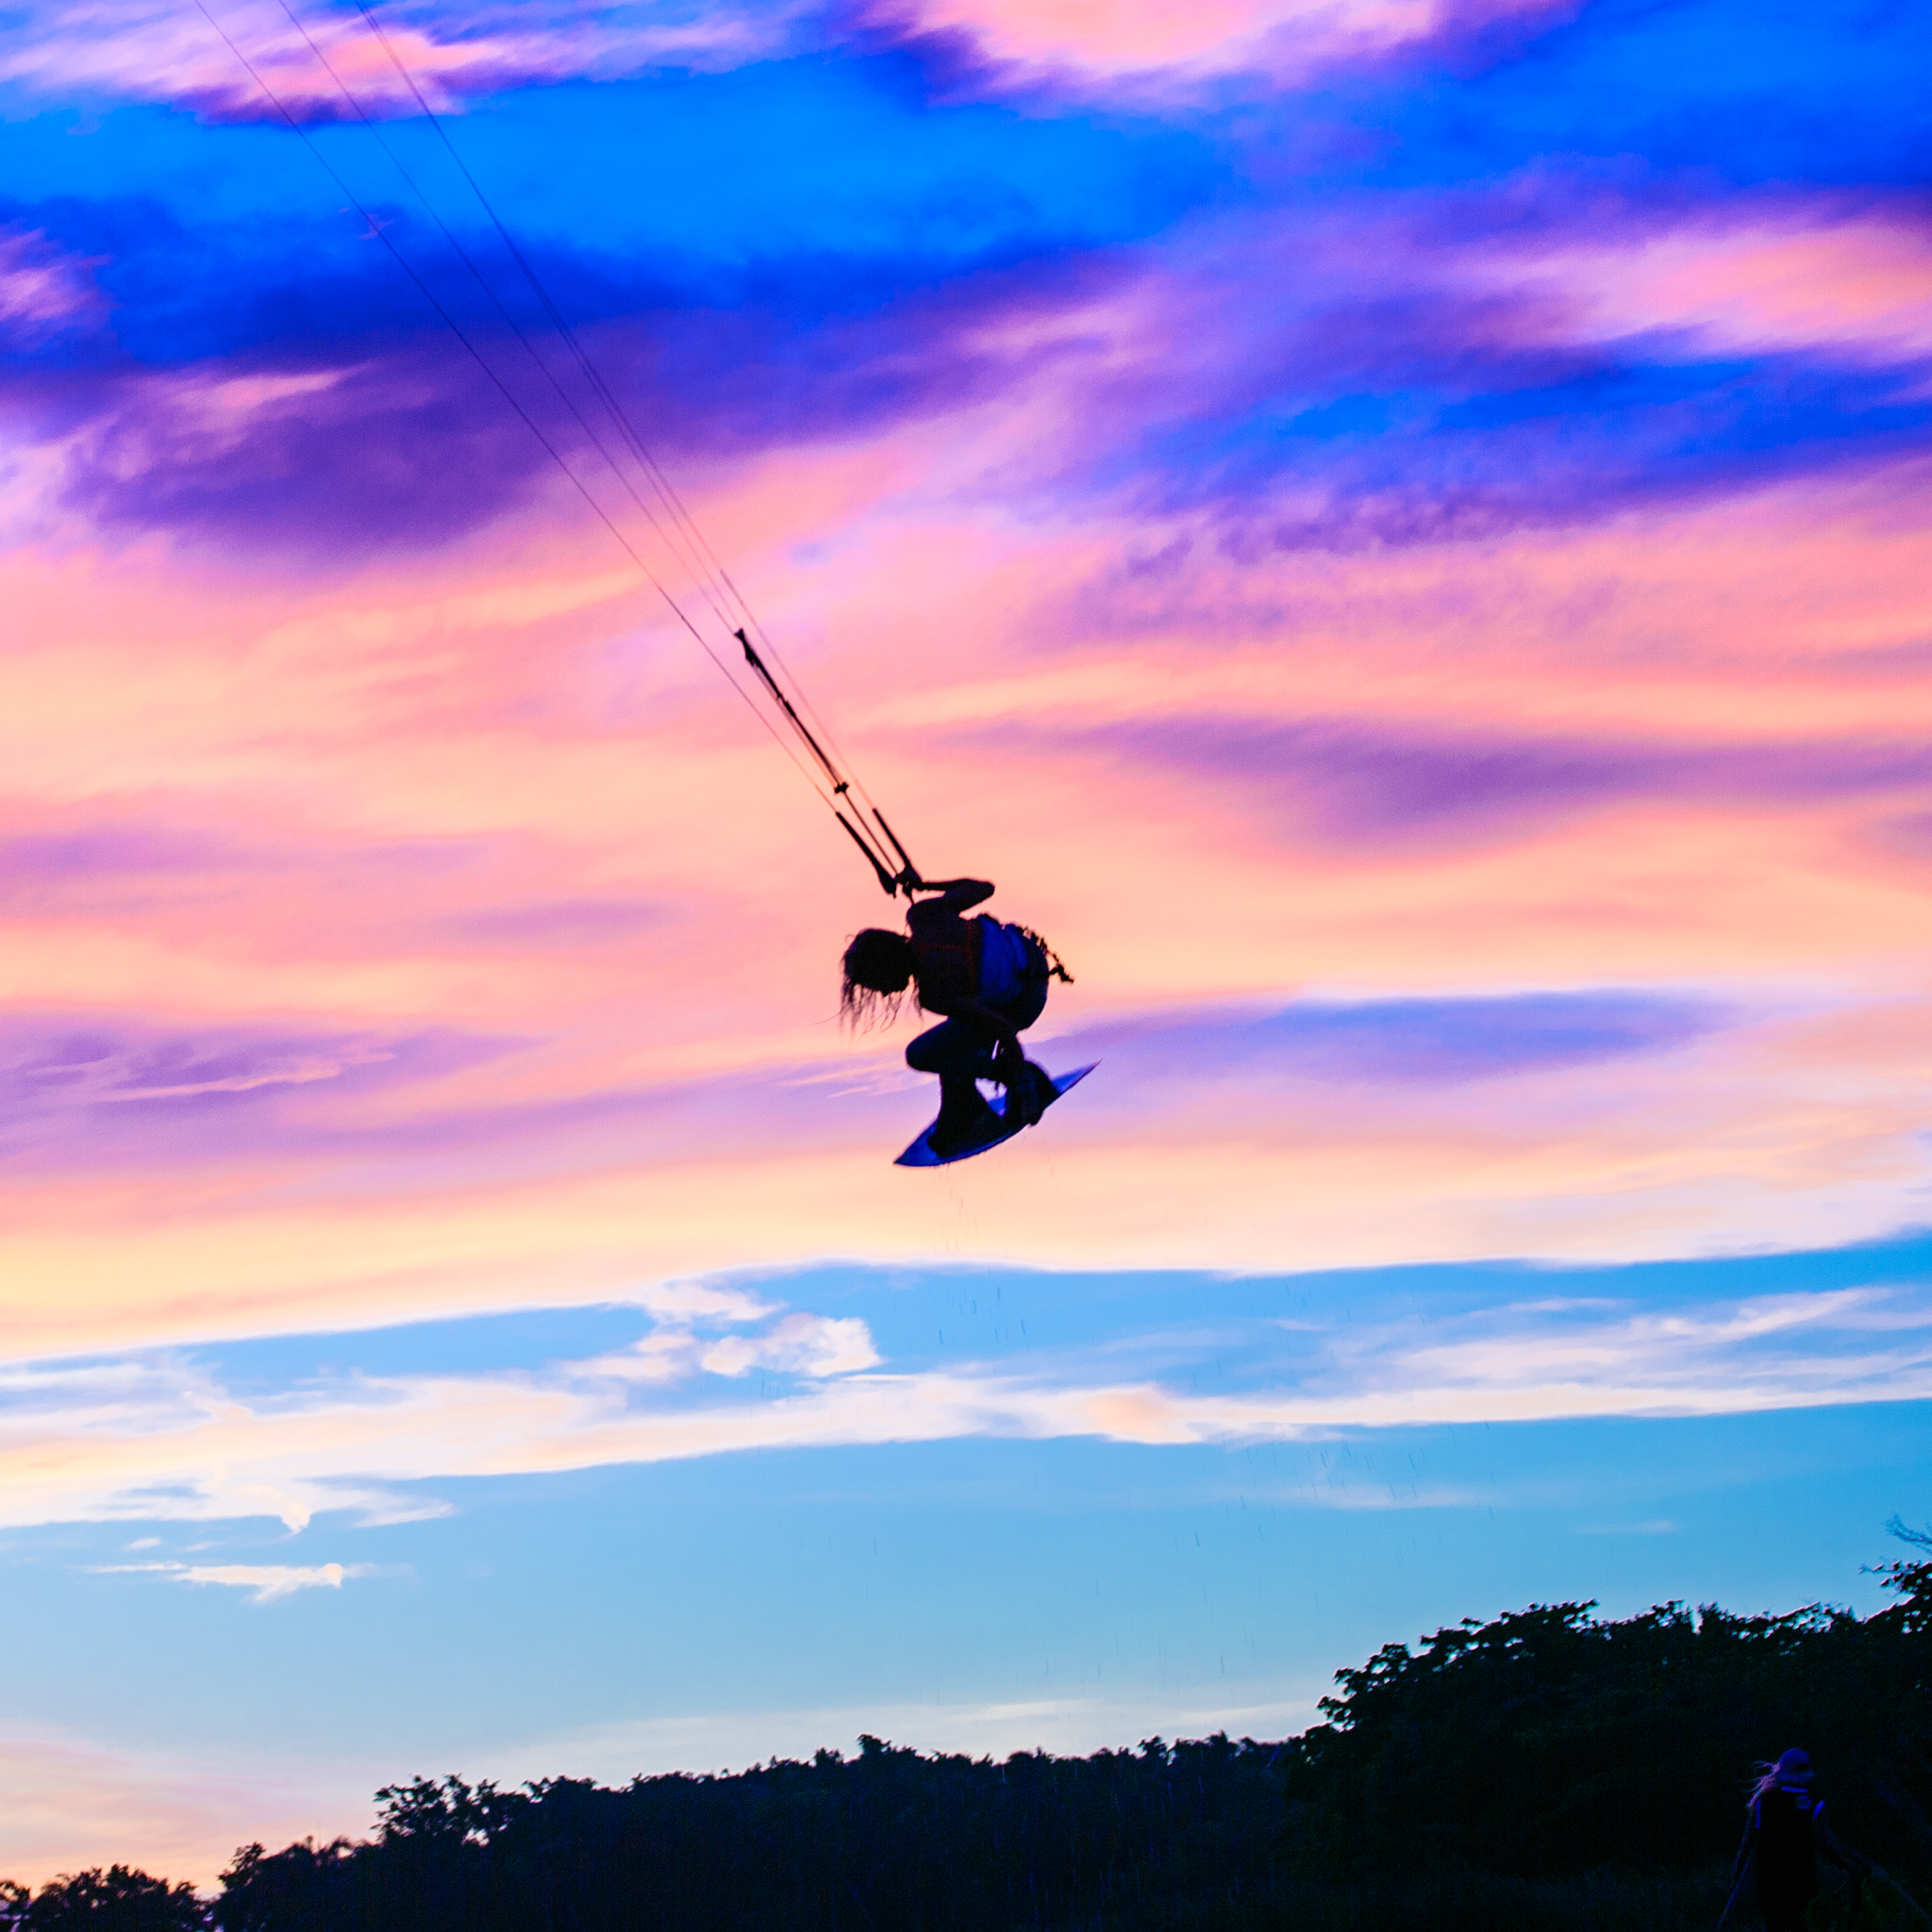 kitesurf wallpaper image - Indie grab at sunset with Tona Boards - kitesurfing - in resolution: iPad 2 & 3 2048 X 2048